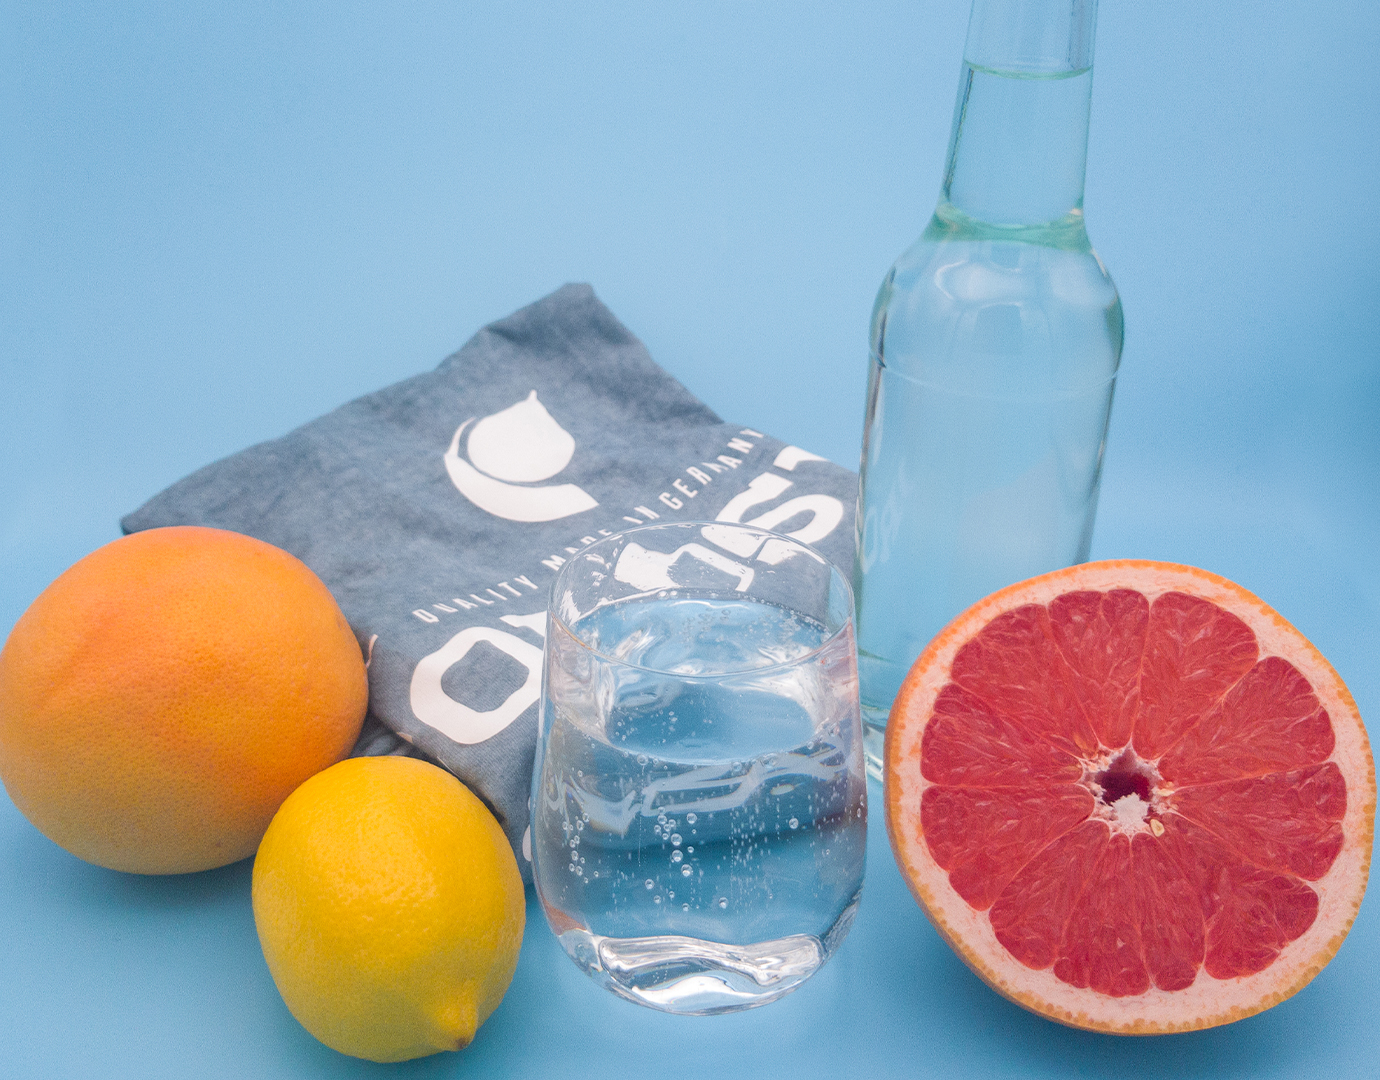 Product picture of Hard seltzer